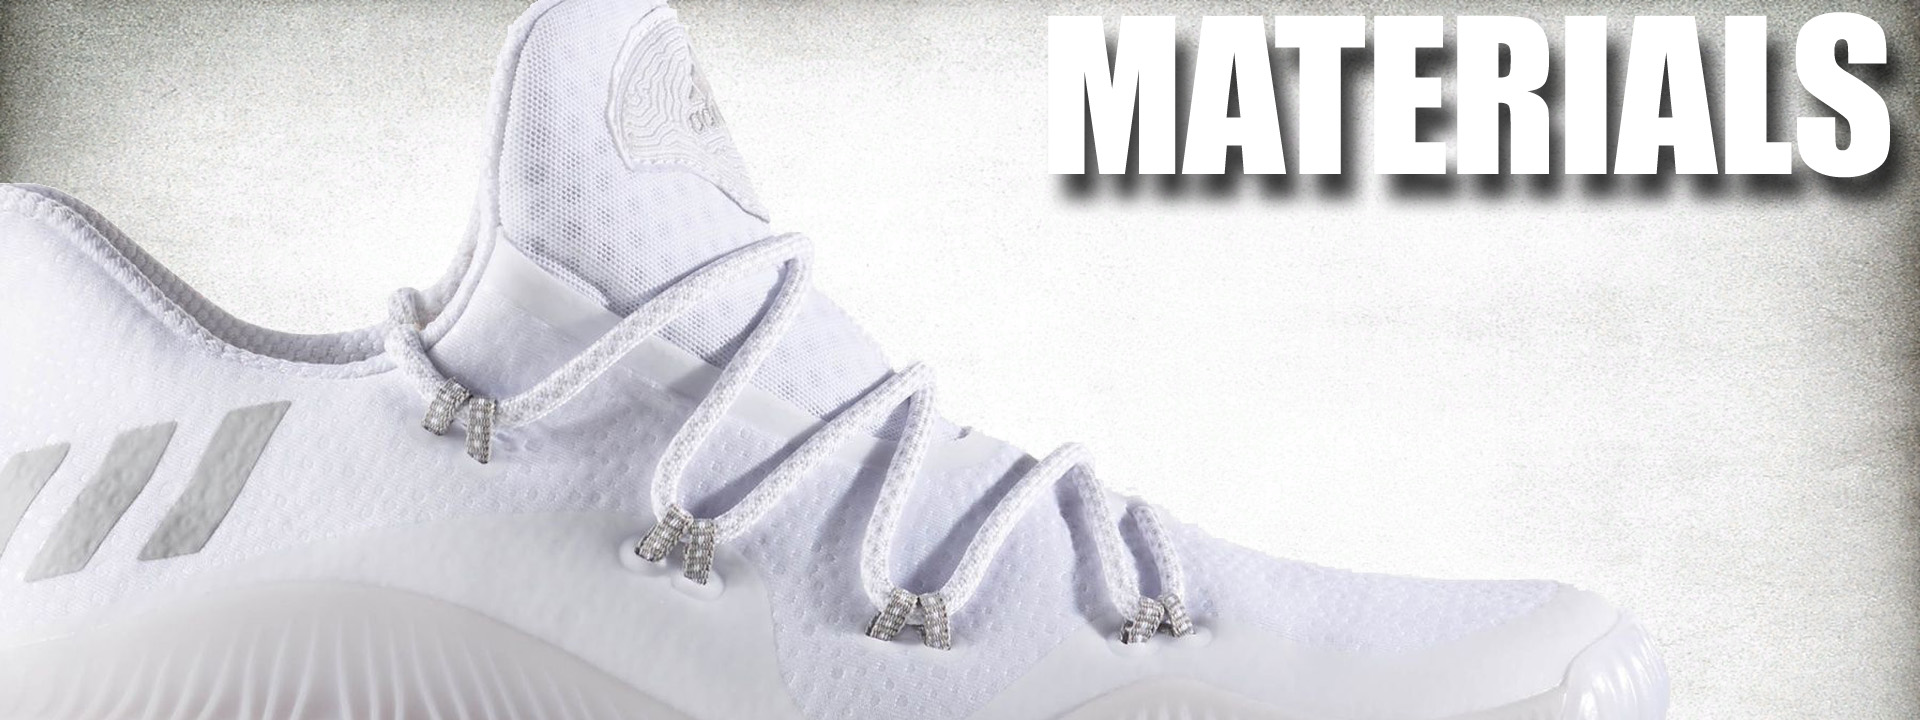 adidas Crazy Explosive Low Performance Review - WearTesters